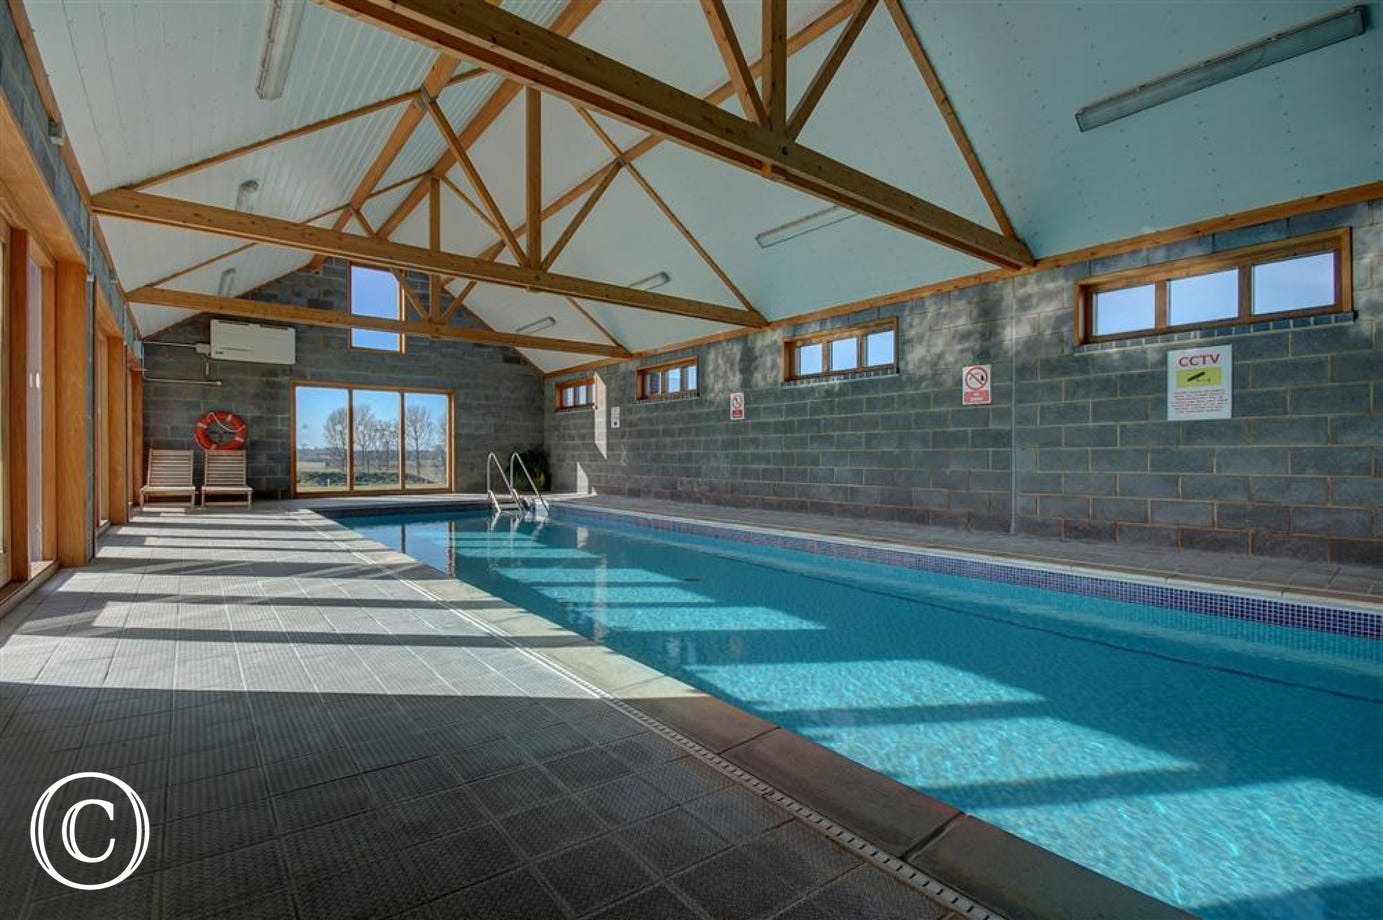 Swimming Pool - View 1